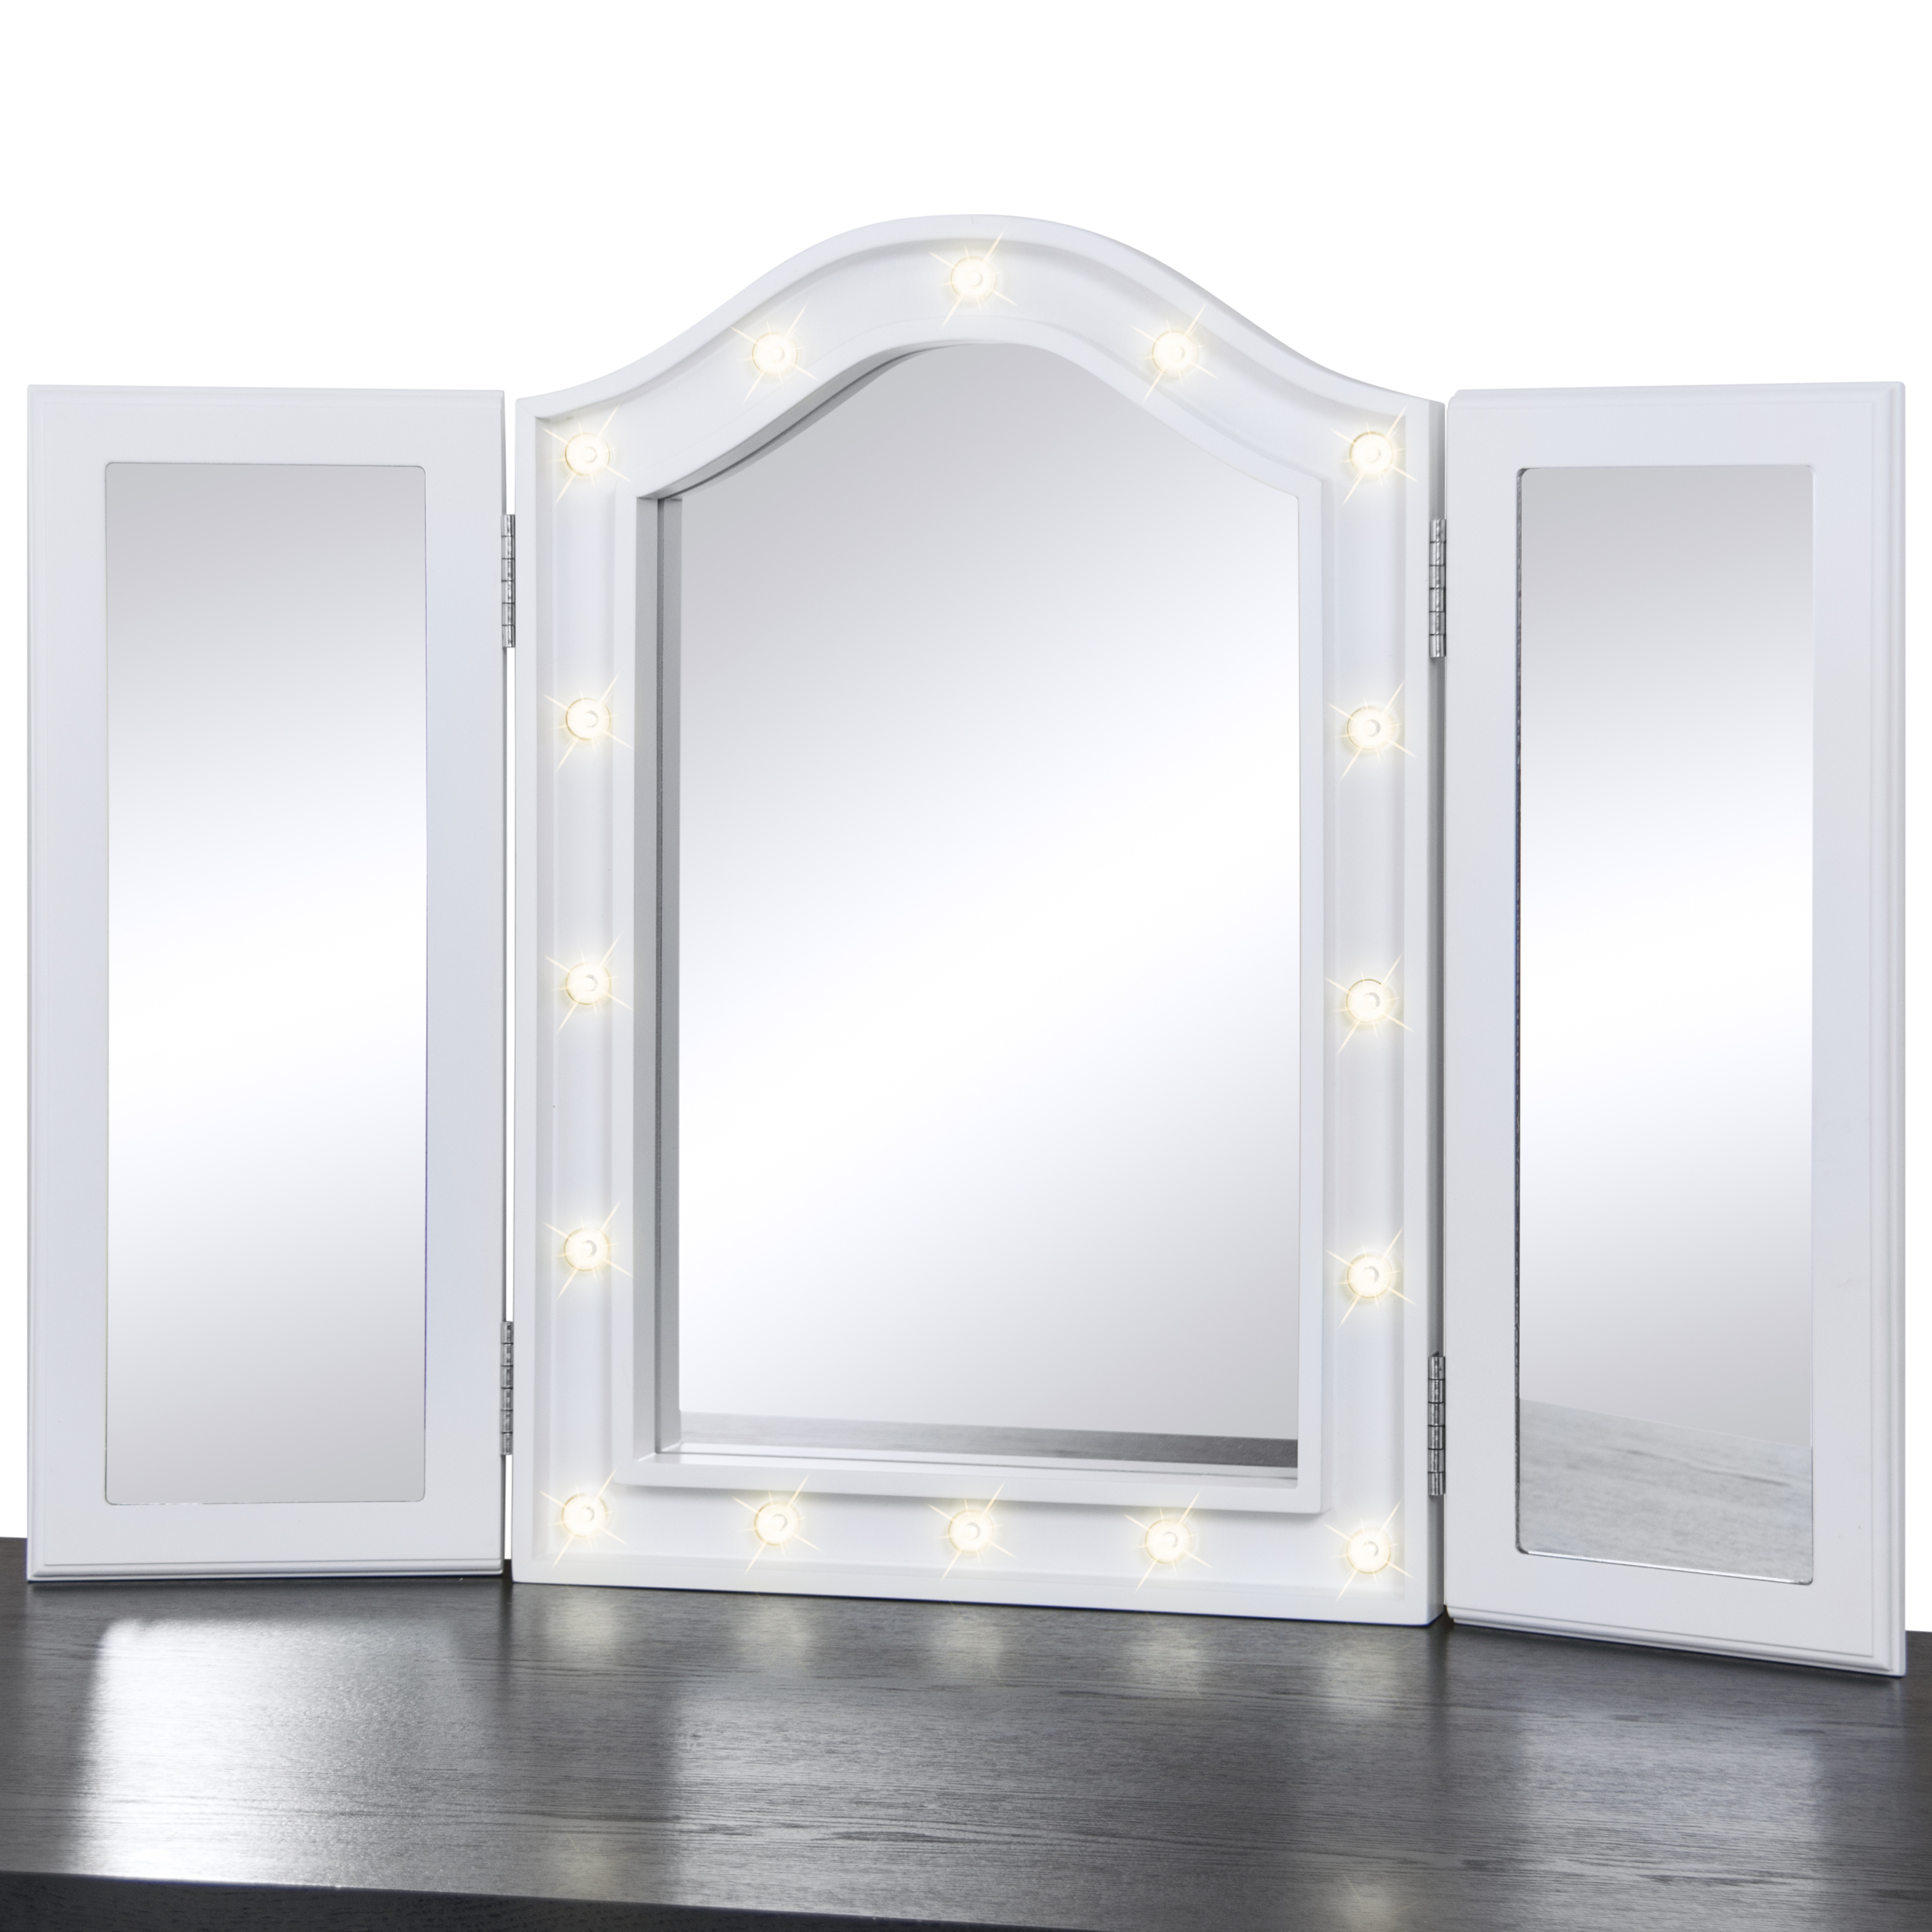 Superb Best Choice Products Lit Tabletop Tri Fold Vanity Mirror W/ LED Lights  (White